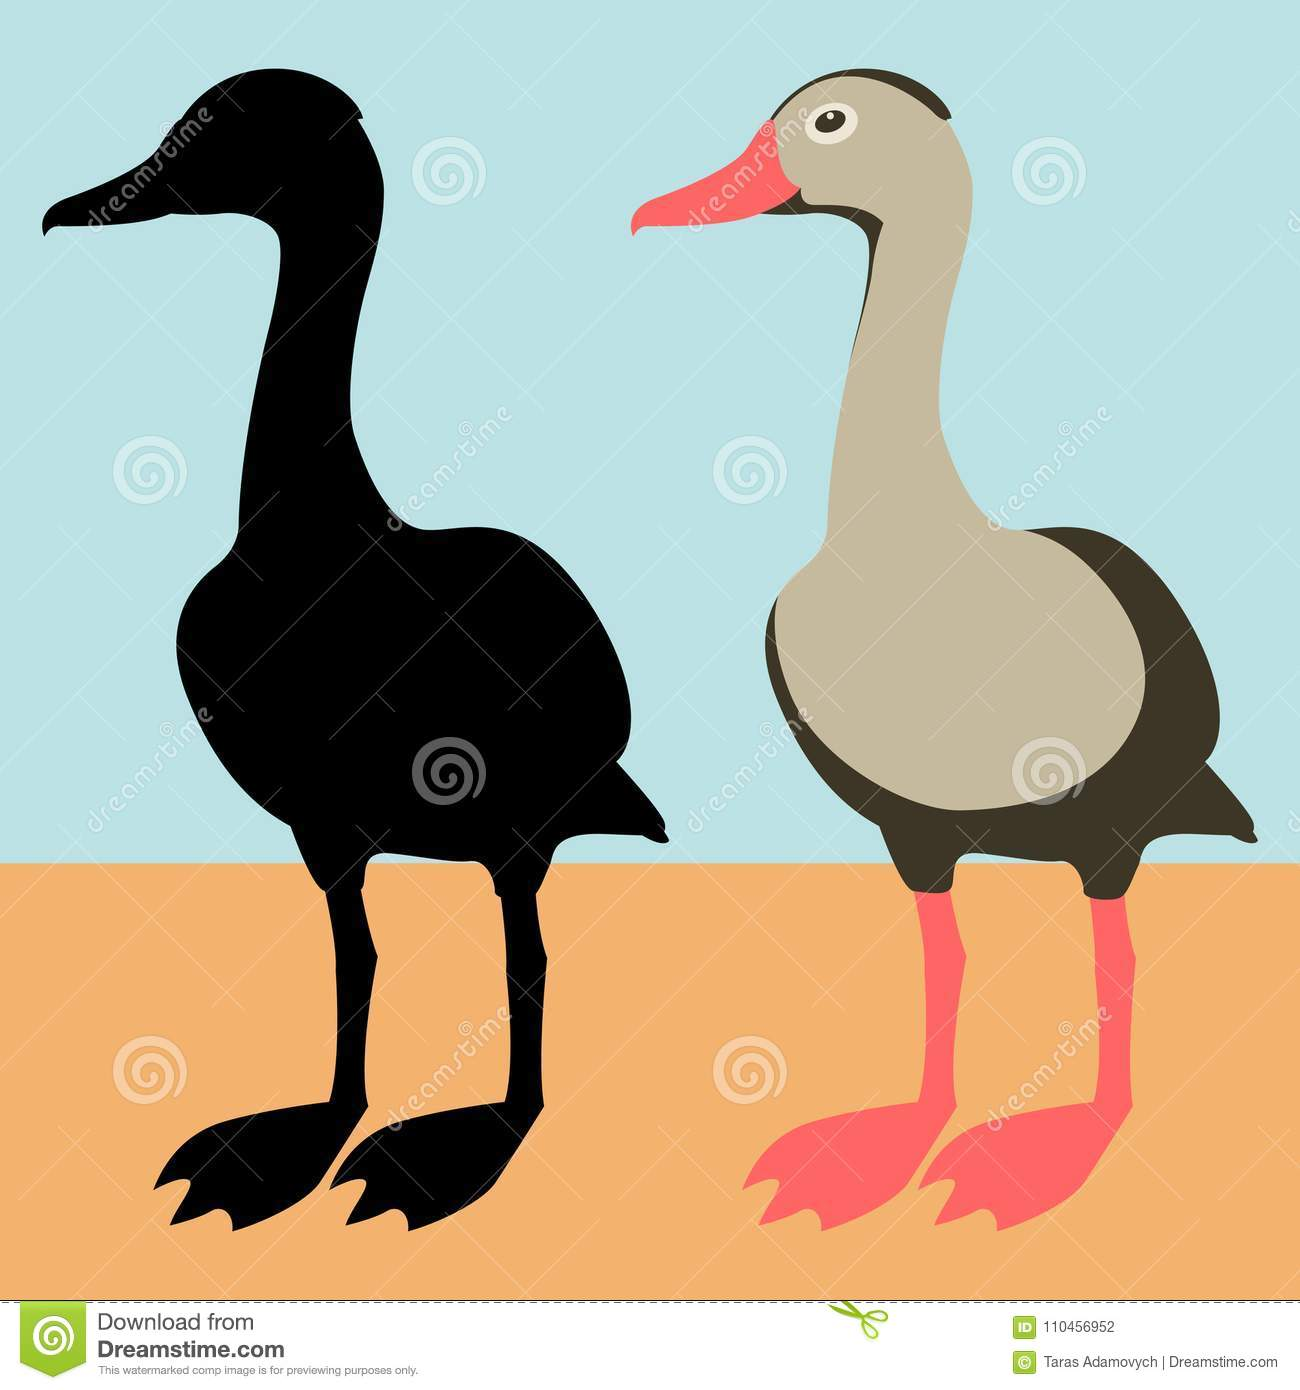 Canard le noir stock illustrations vecteurs clipart - Illustration canard ...